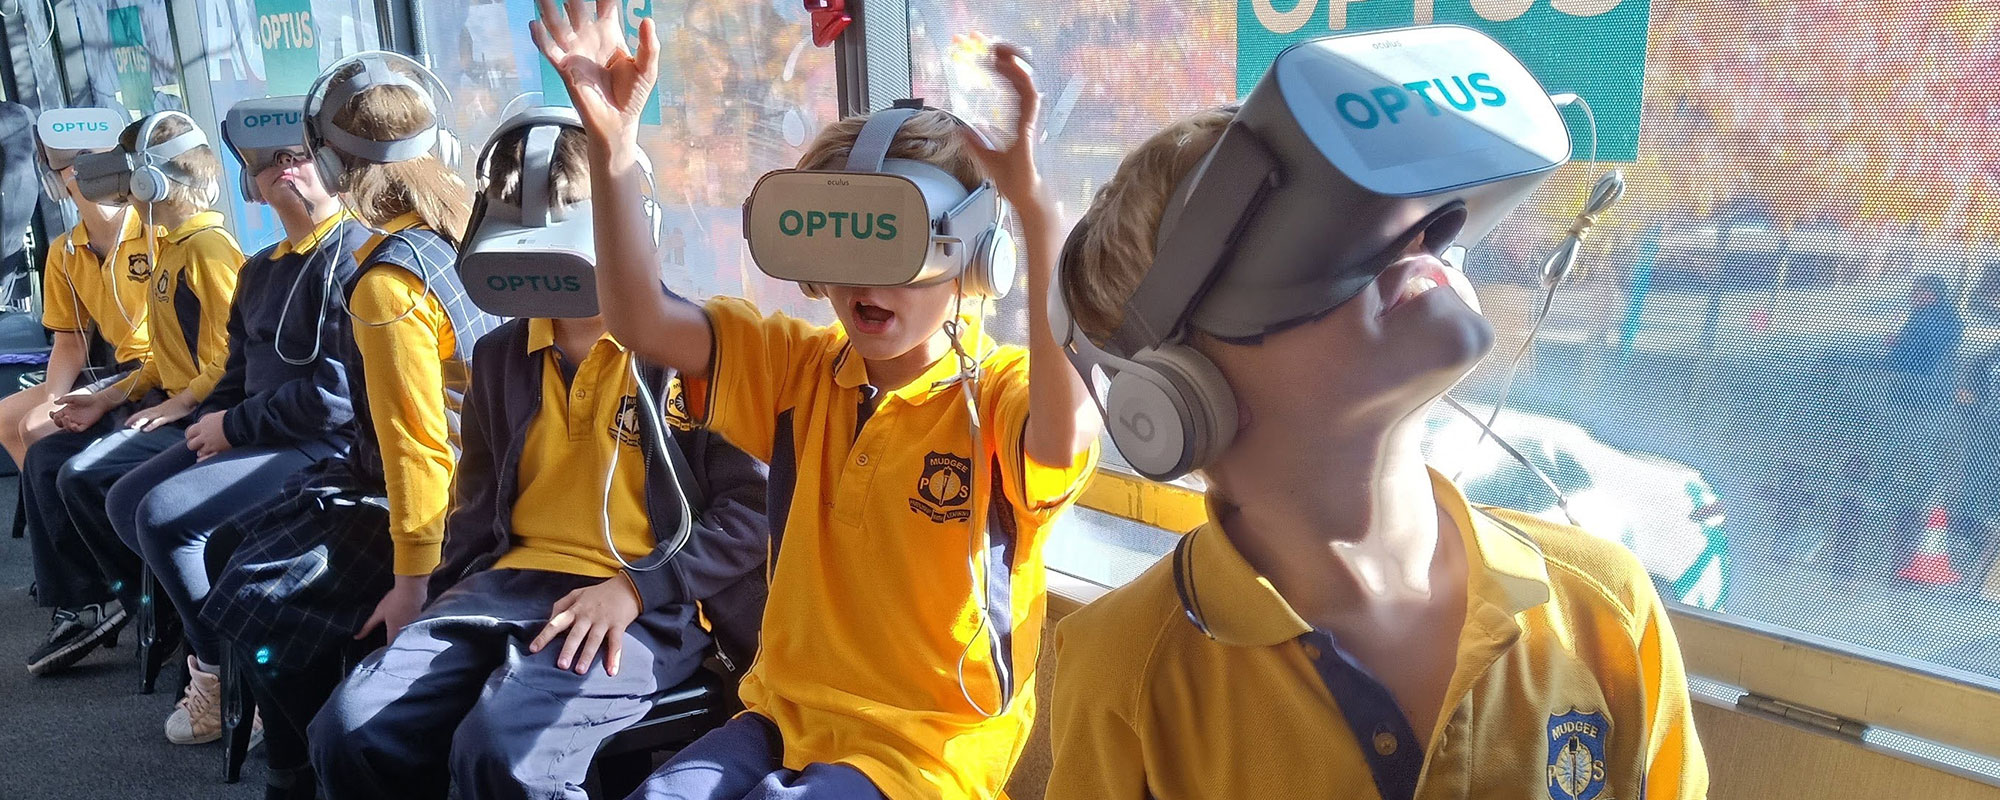 Think Digital - Kids experiencing VR on the bus